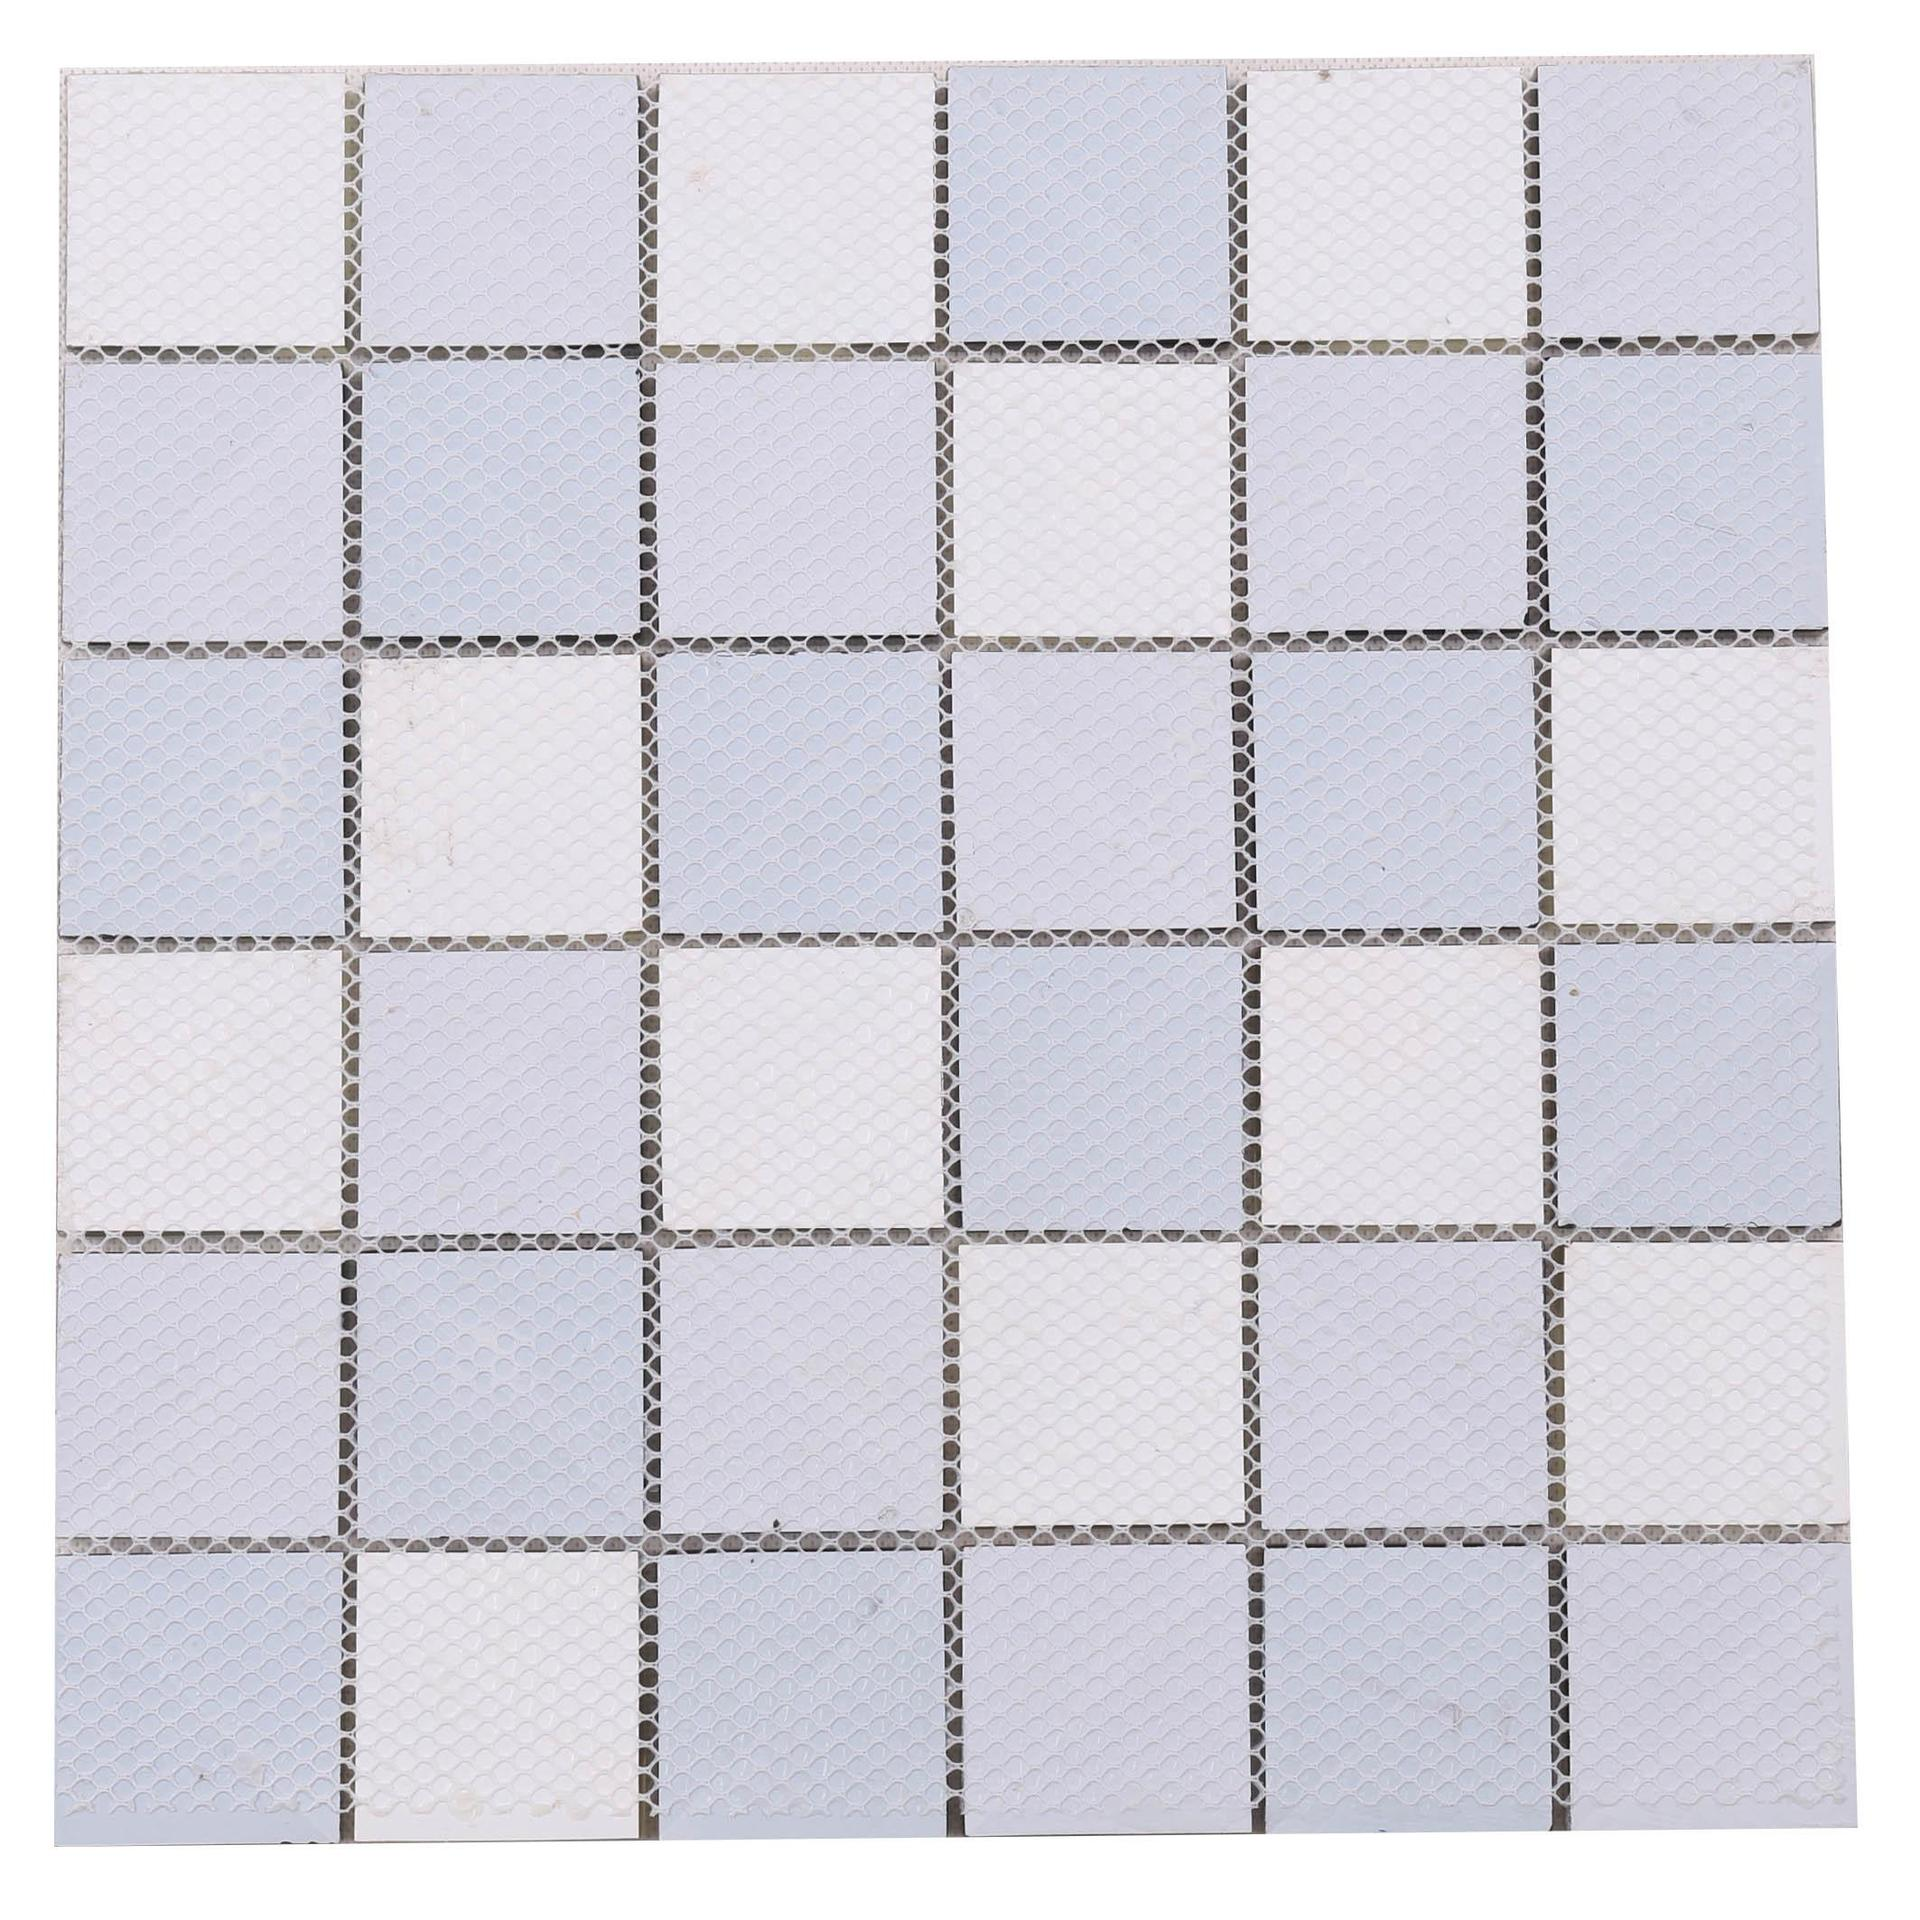 Heng Xing Best pool trim tiles for business for fountain